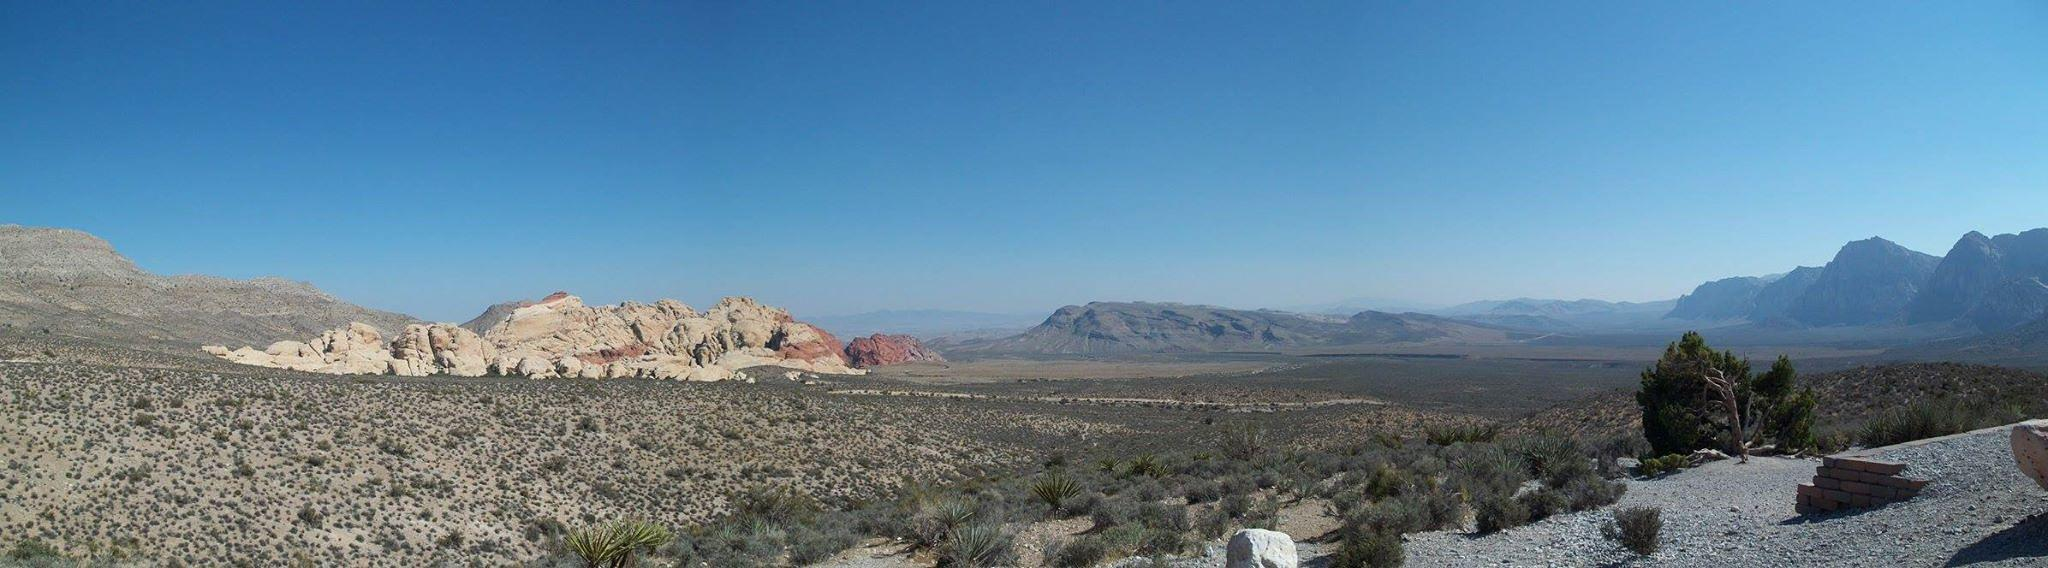 Red Rock , Nevada by April Dawn